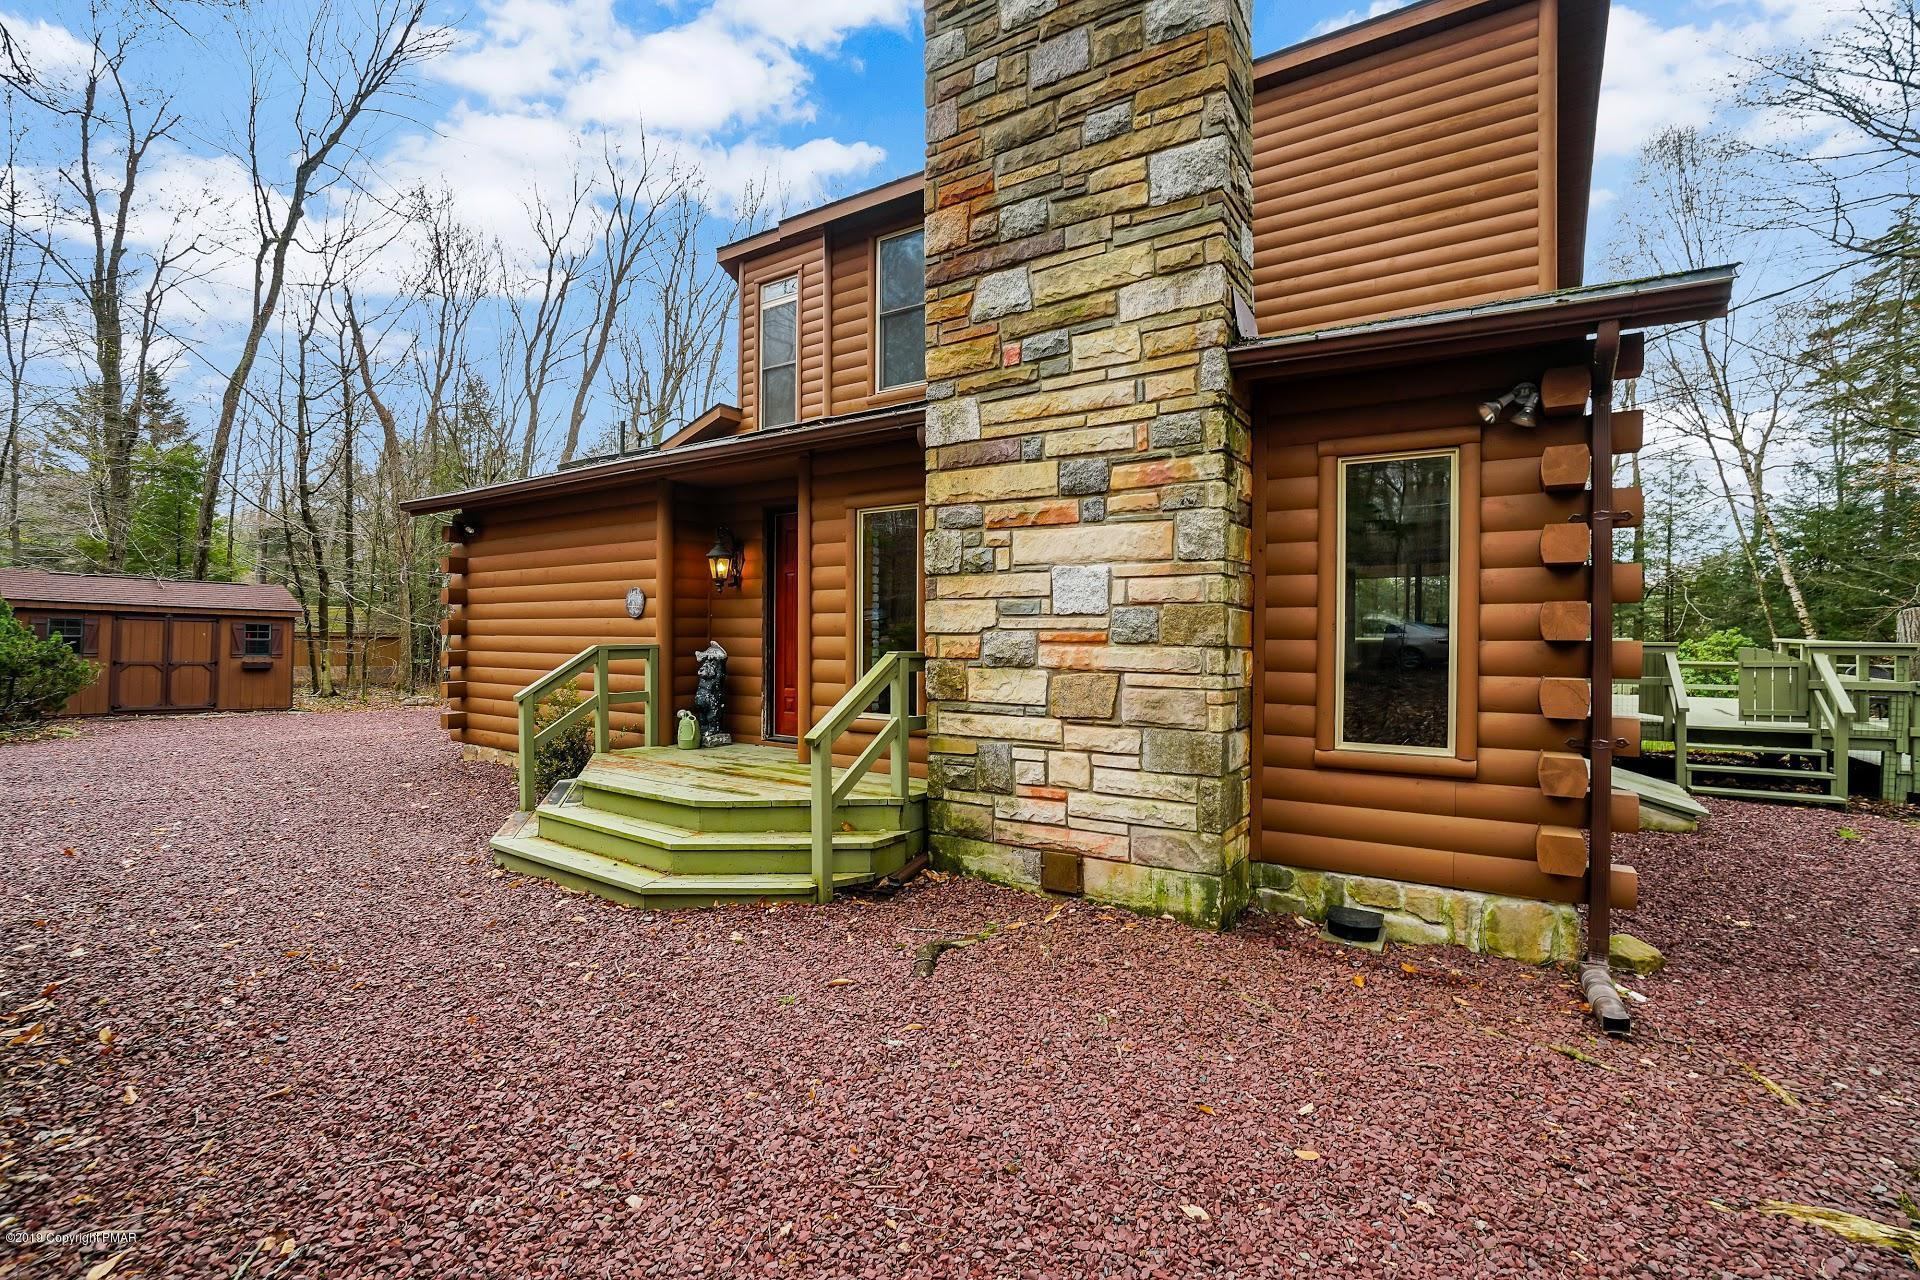 196 King Arthur Rd, Pocono Lake, PA 18347